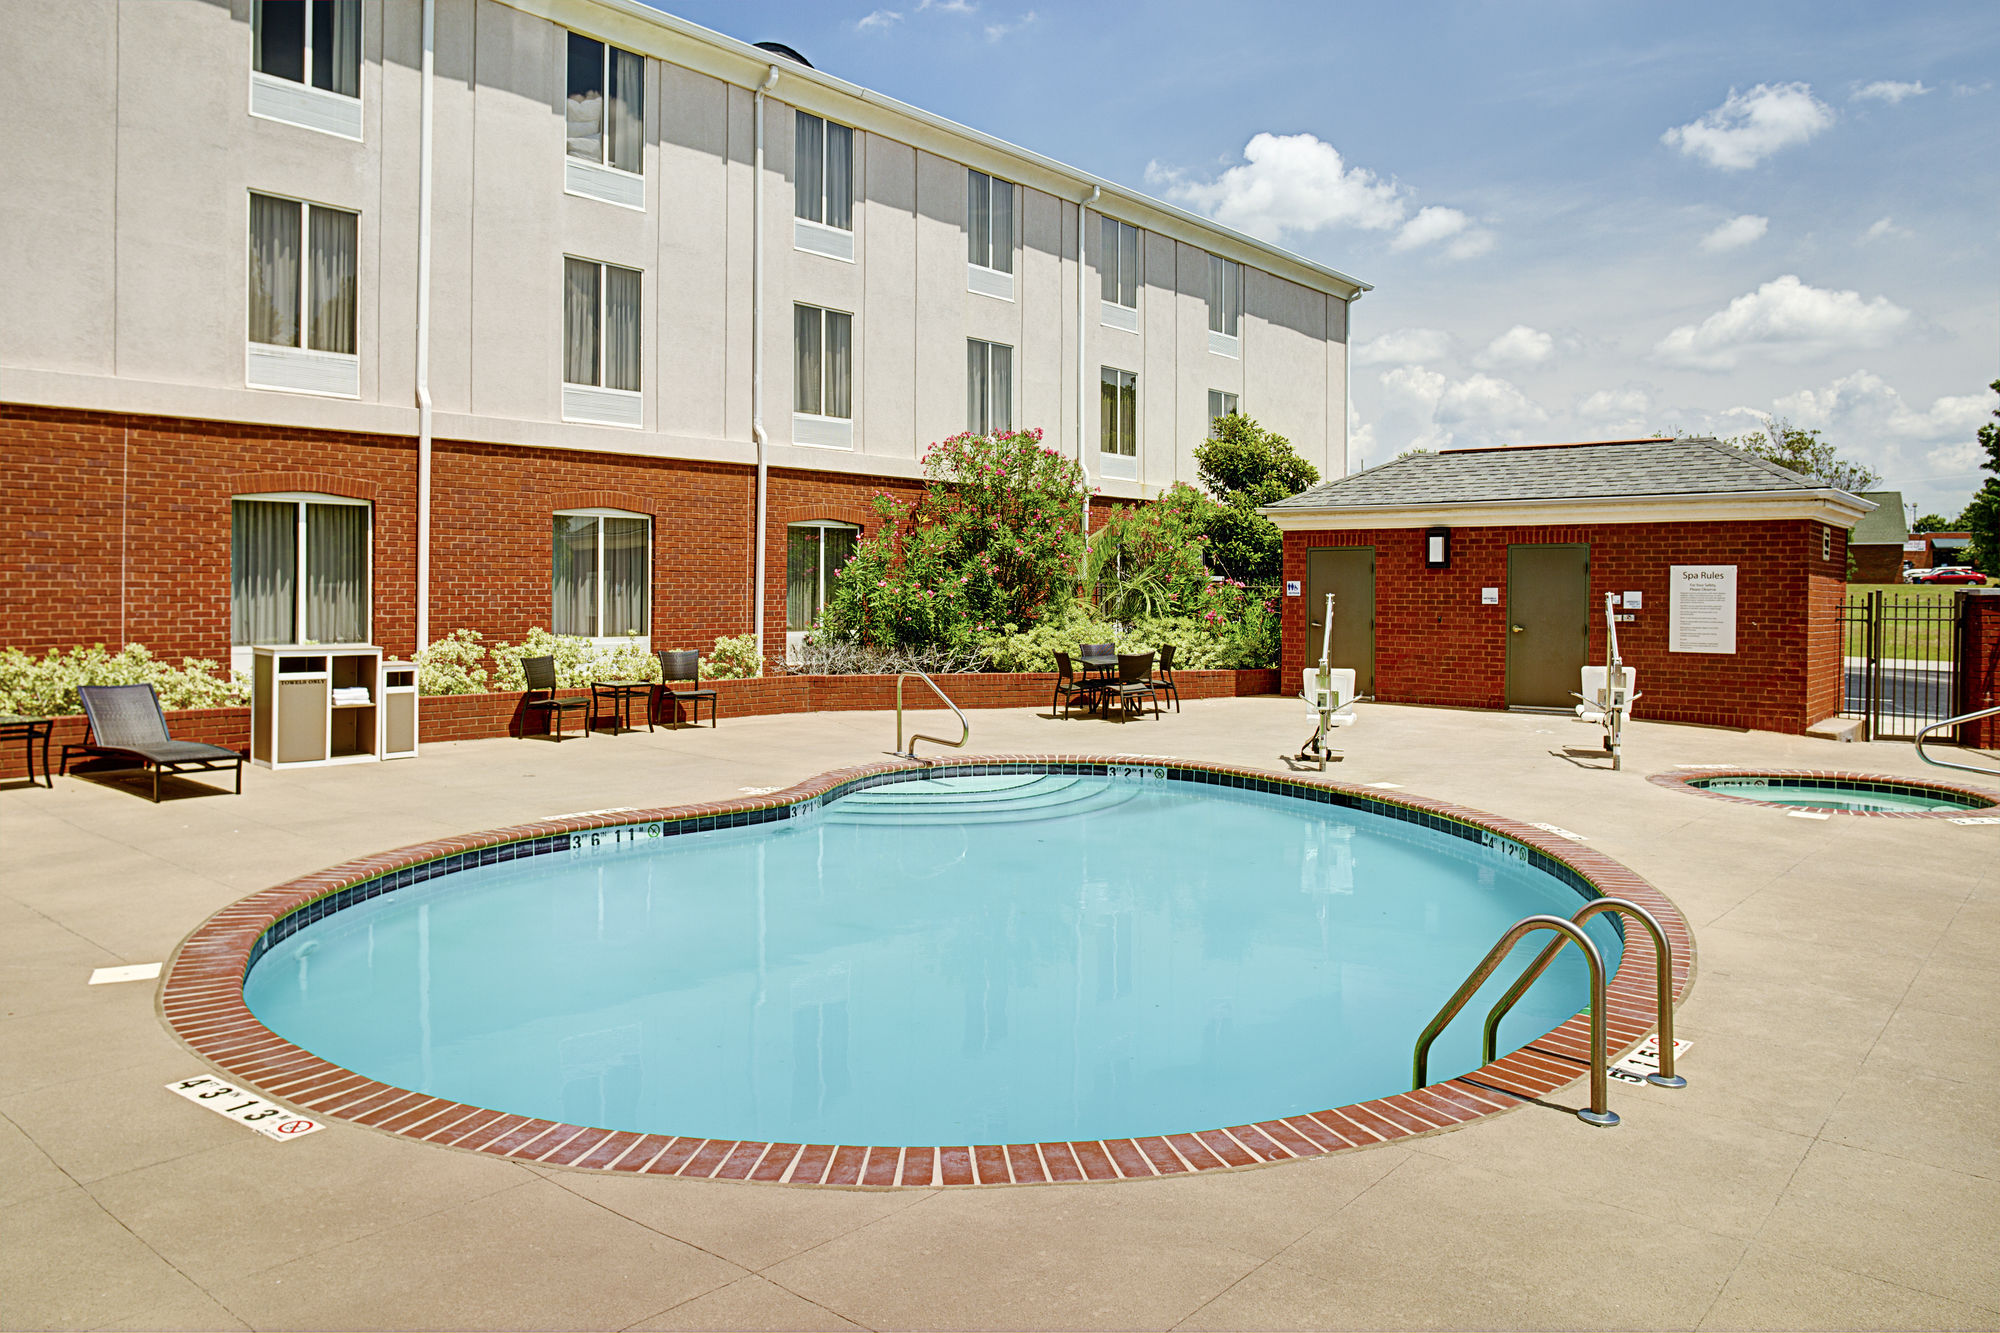 Holiday Inn Express Hotel & Suites Auburn - University Area in Auburn, AL